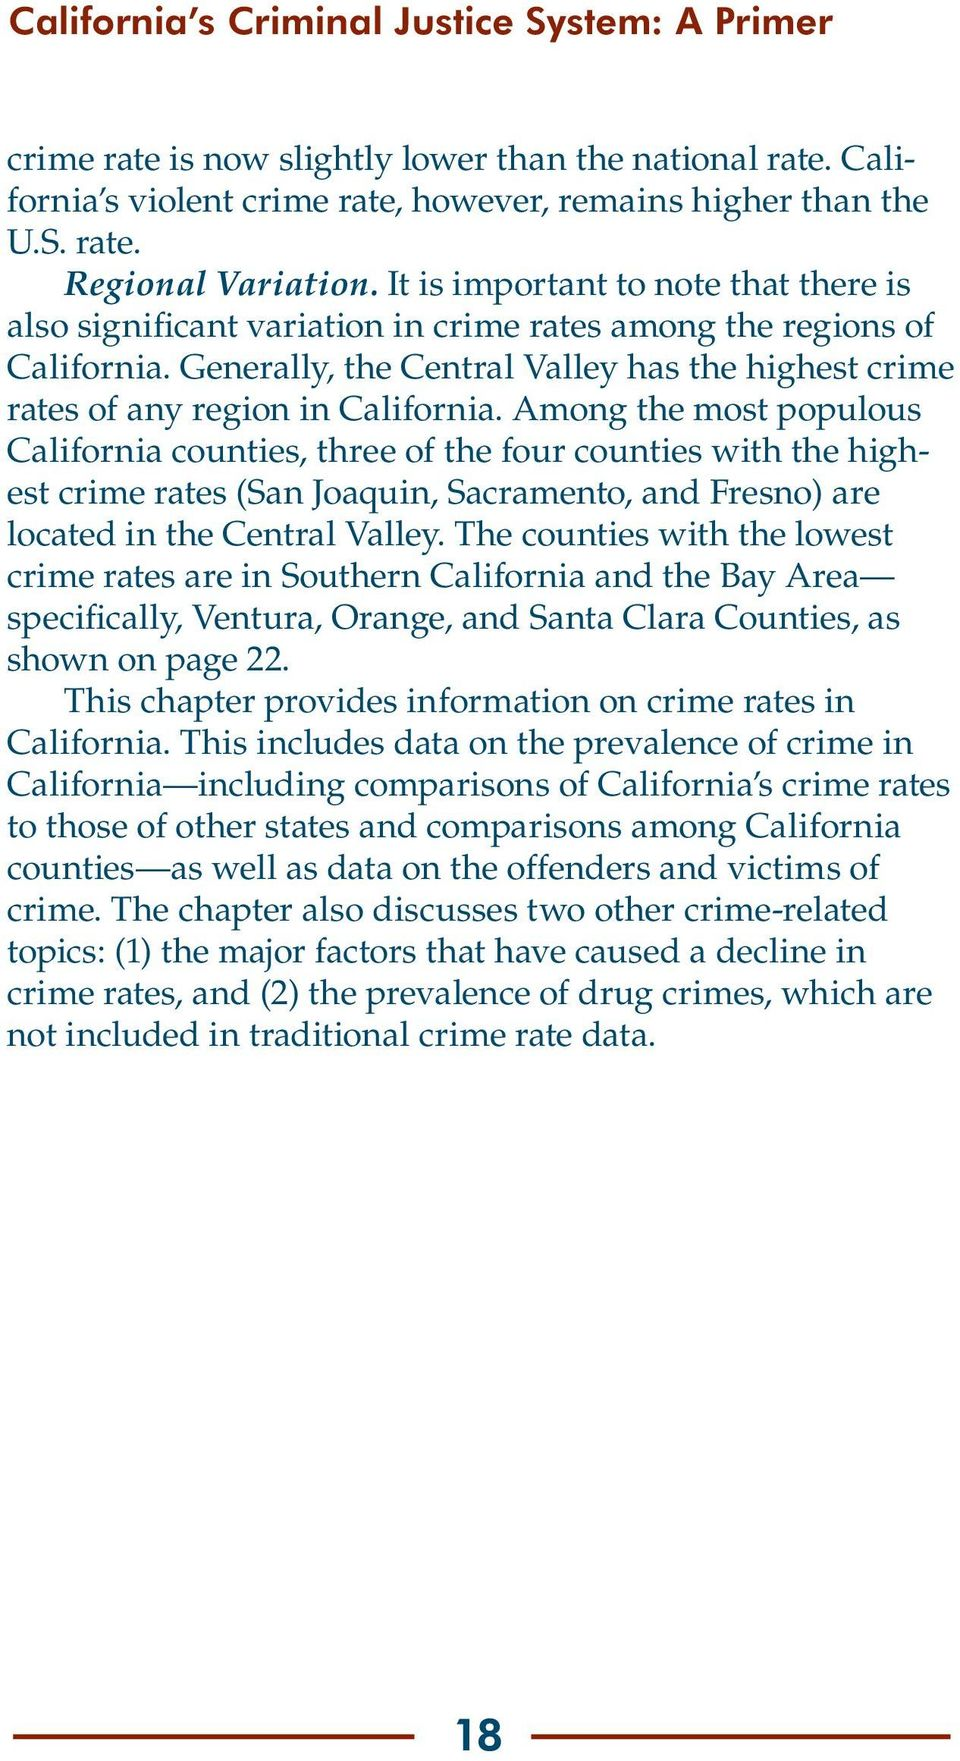 Among the most populous California counties, three of the four counties with the highest crime rates (San Joaquin, Sacramento, and Fresno) are located in the Central Valley.